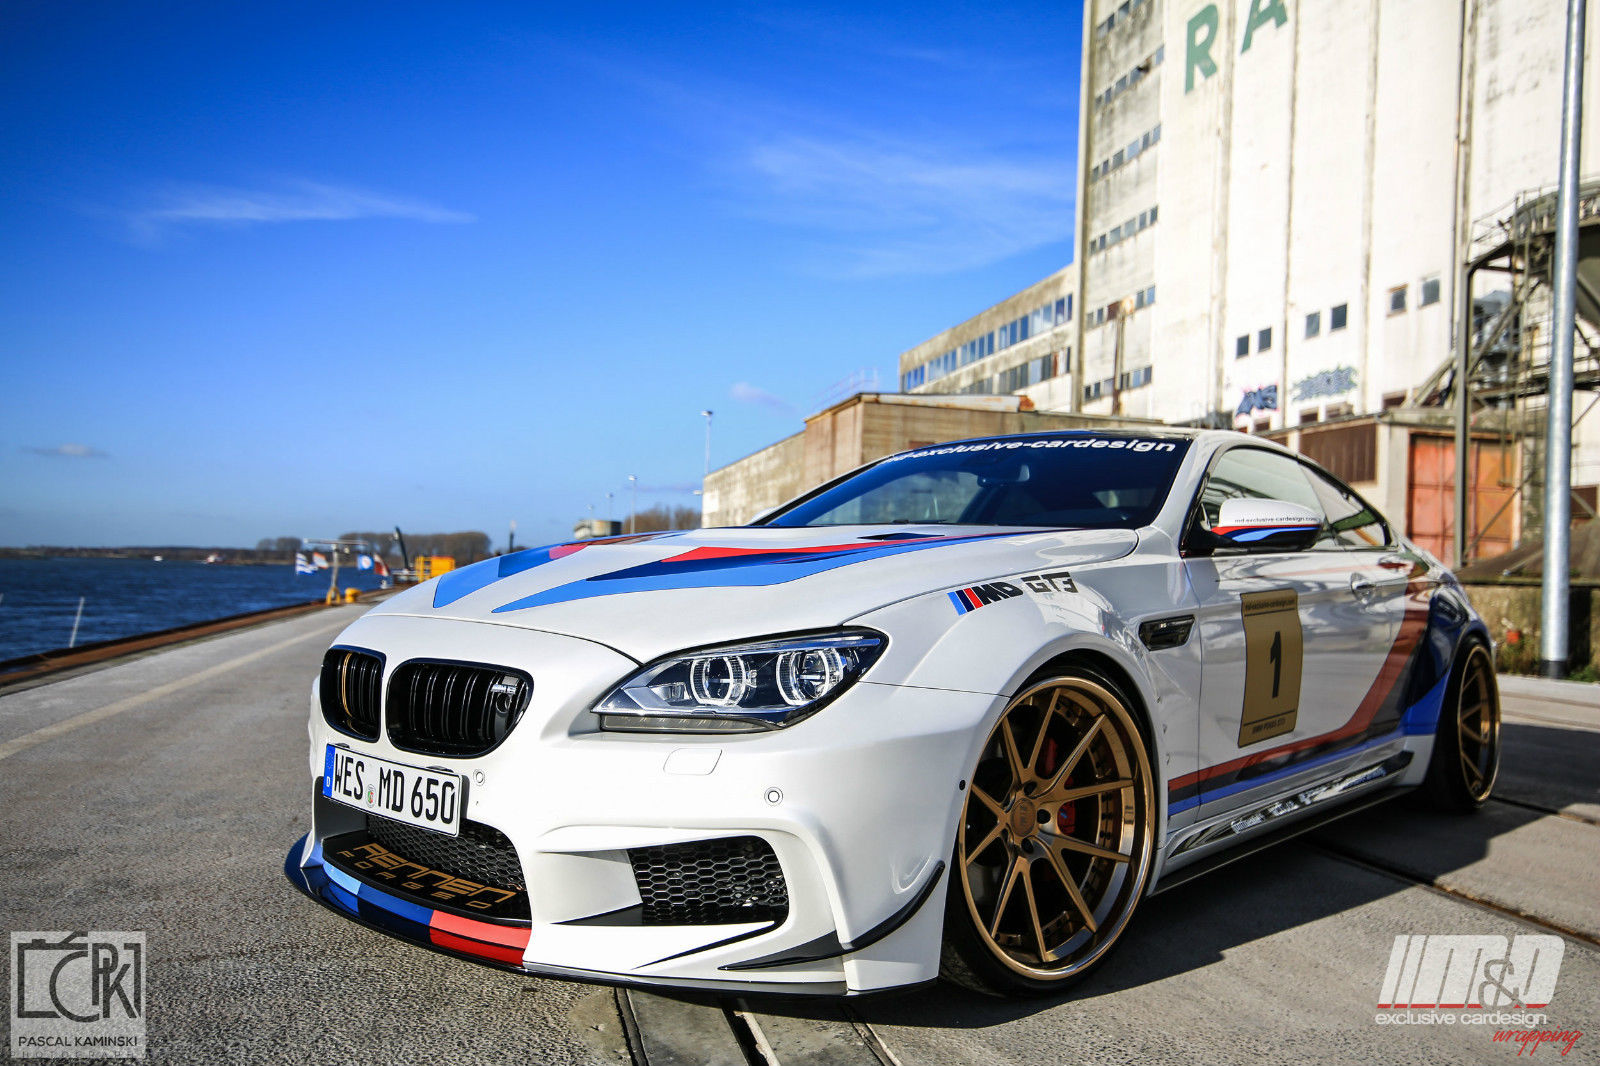 2011 Bmw 650i Coupe 6er F13 M6 Gt3 Widebody 21 Rennen